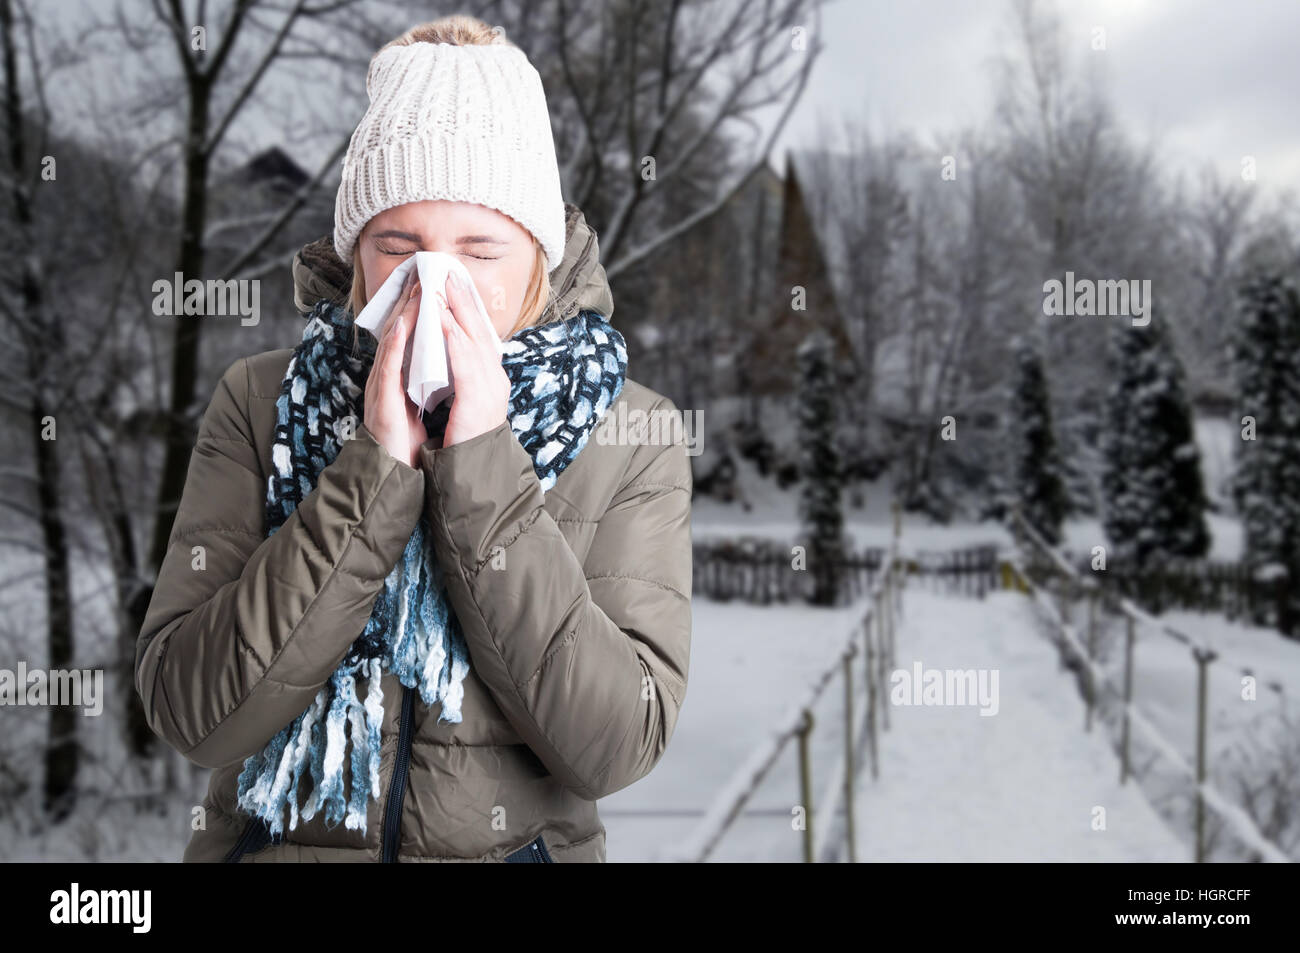 Winter illness concept with woman blowing into napkin outside in the snowy day with copy text space - Stock Image